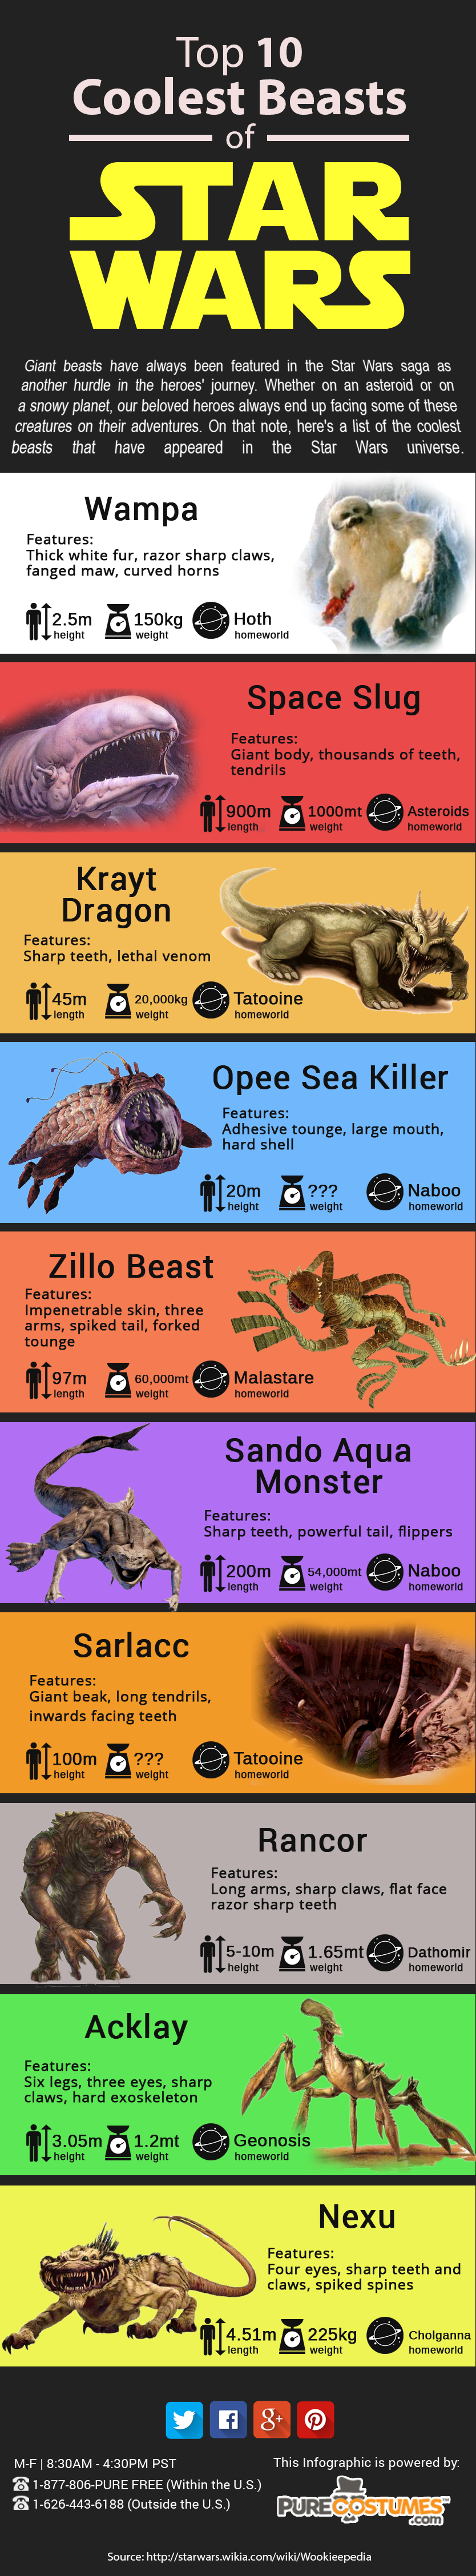 Star Wars Beasts Infographic